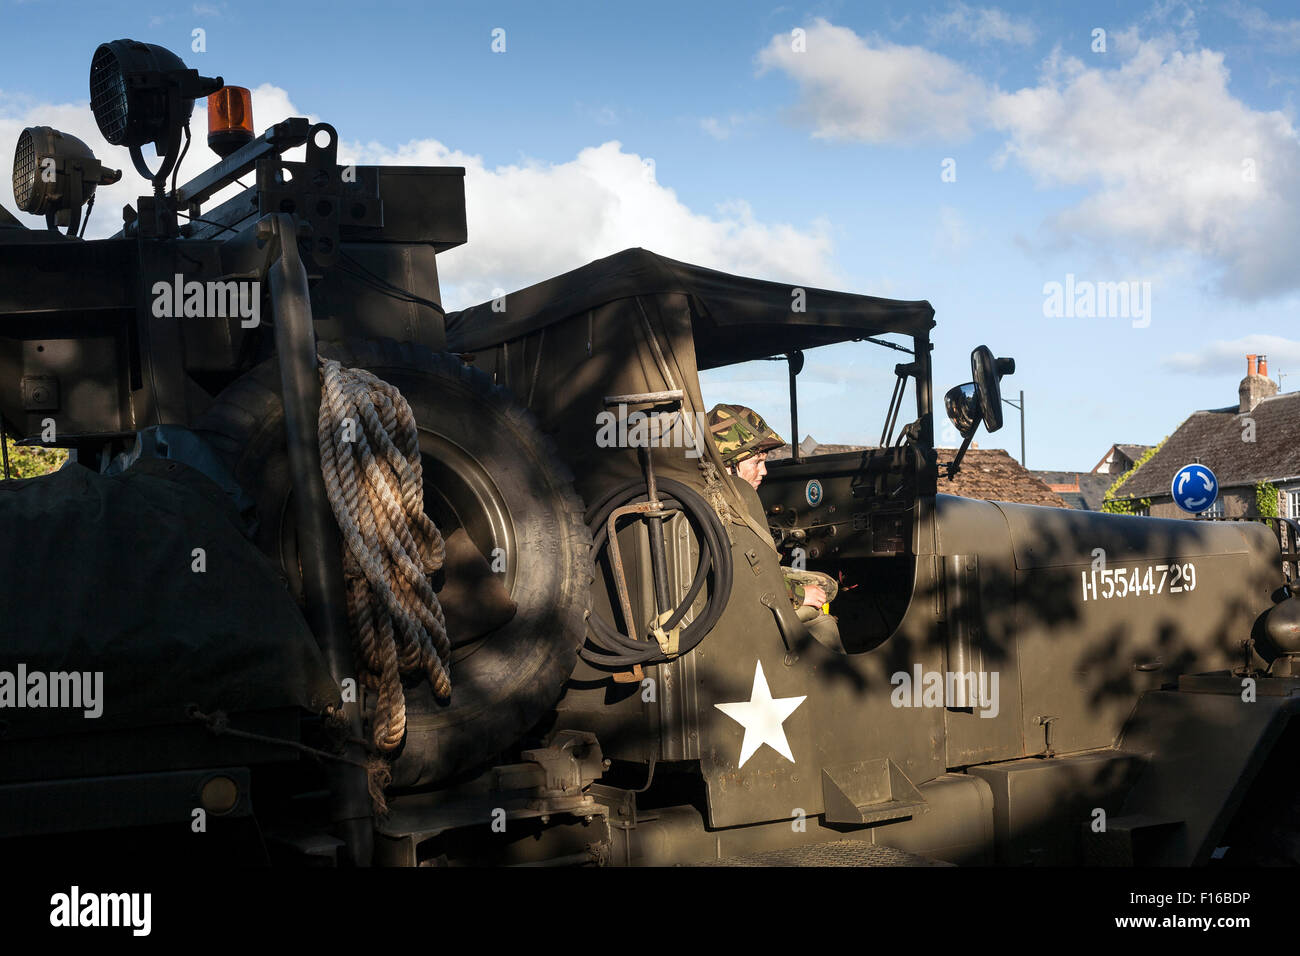 Military parade including American world war two jeep The Willys MB and the Ford GPW are four-wheel drive utility - Stock Image